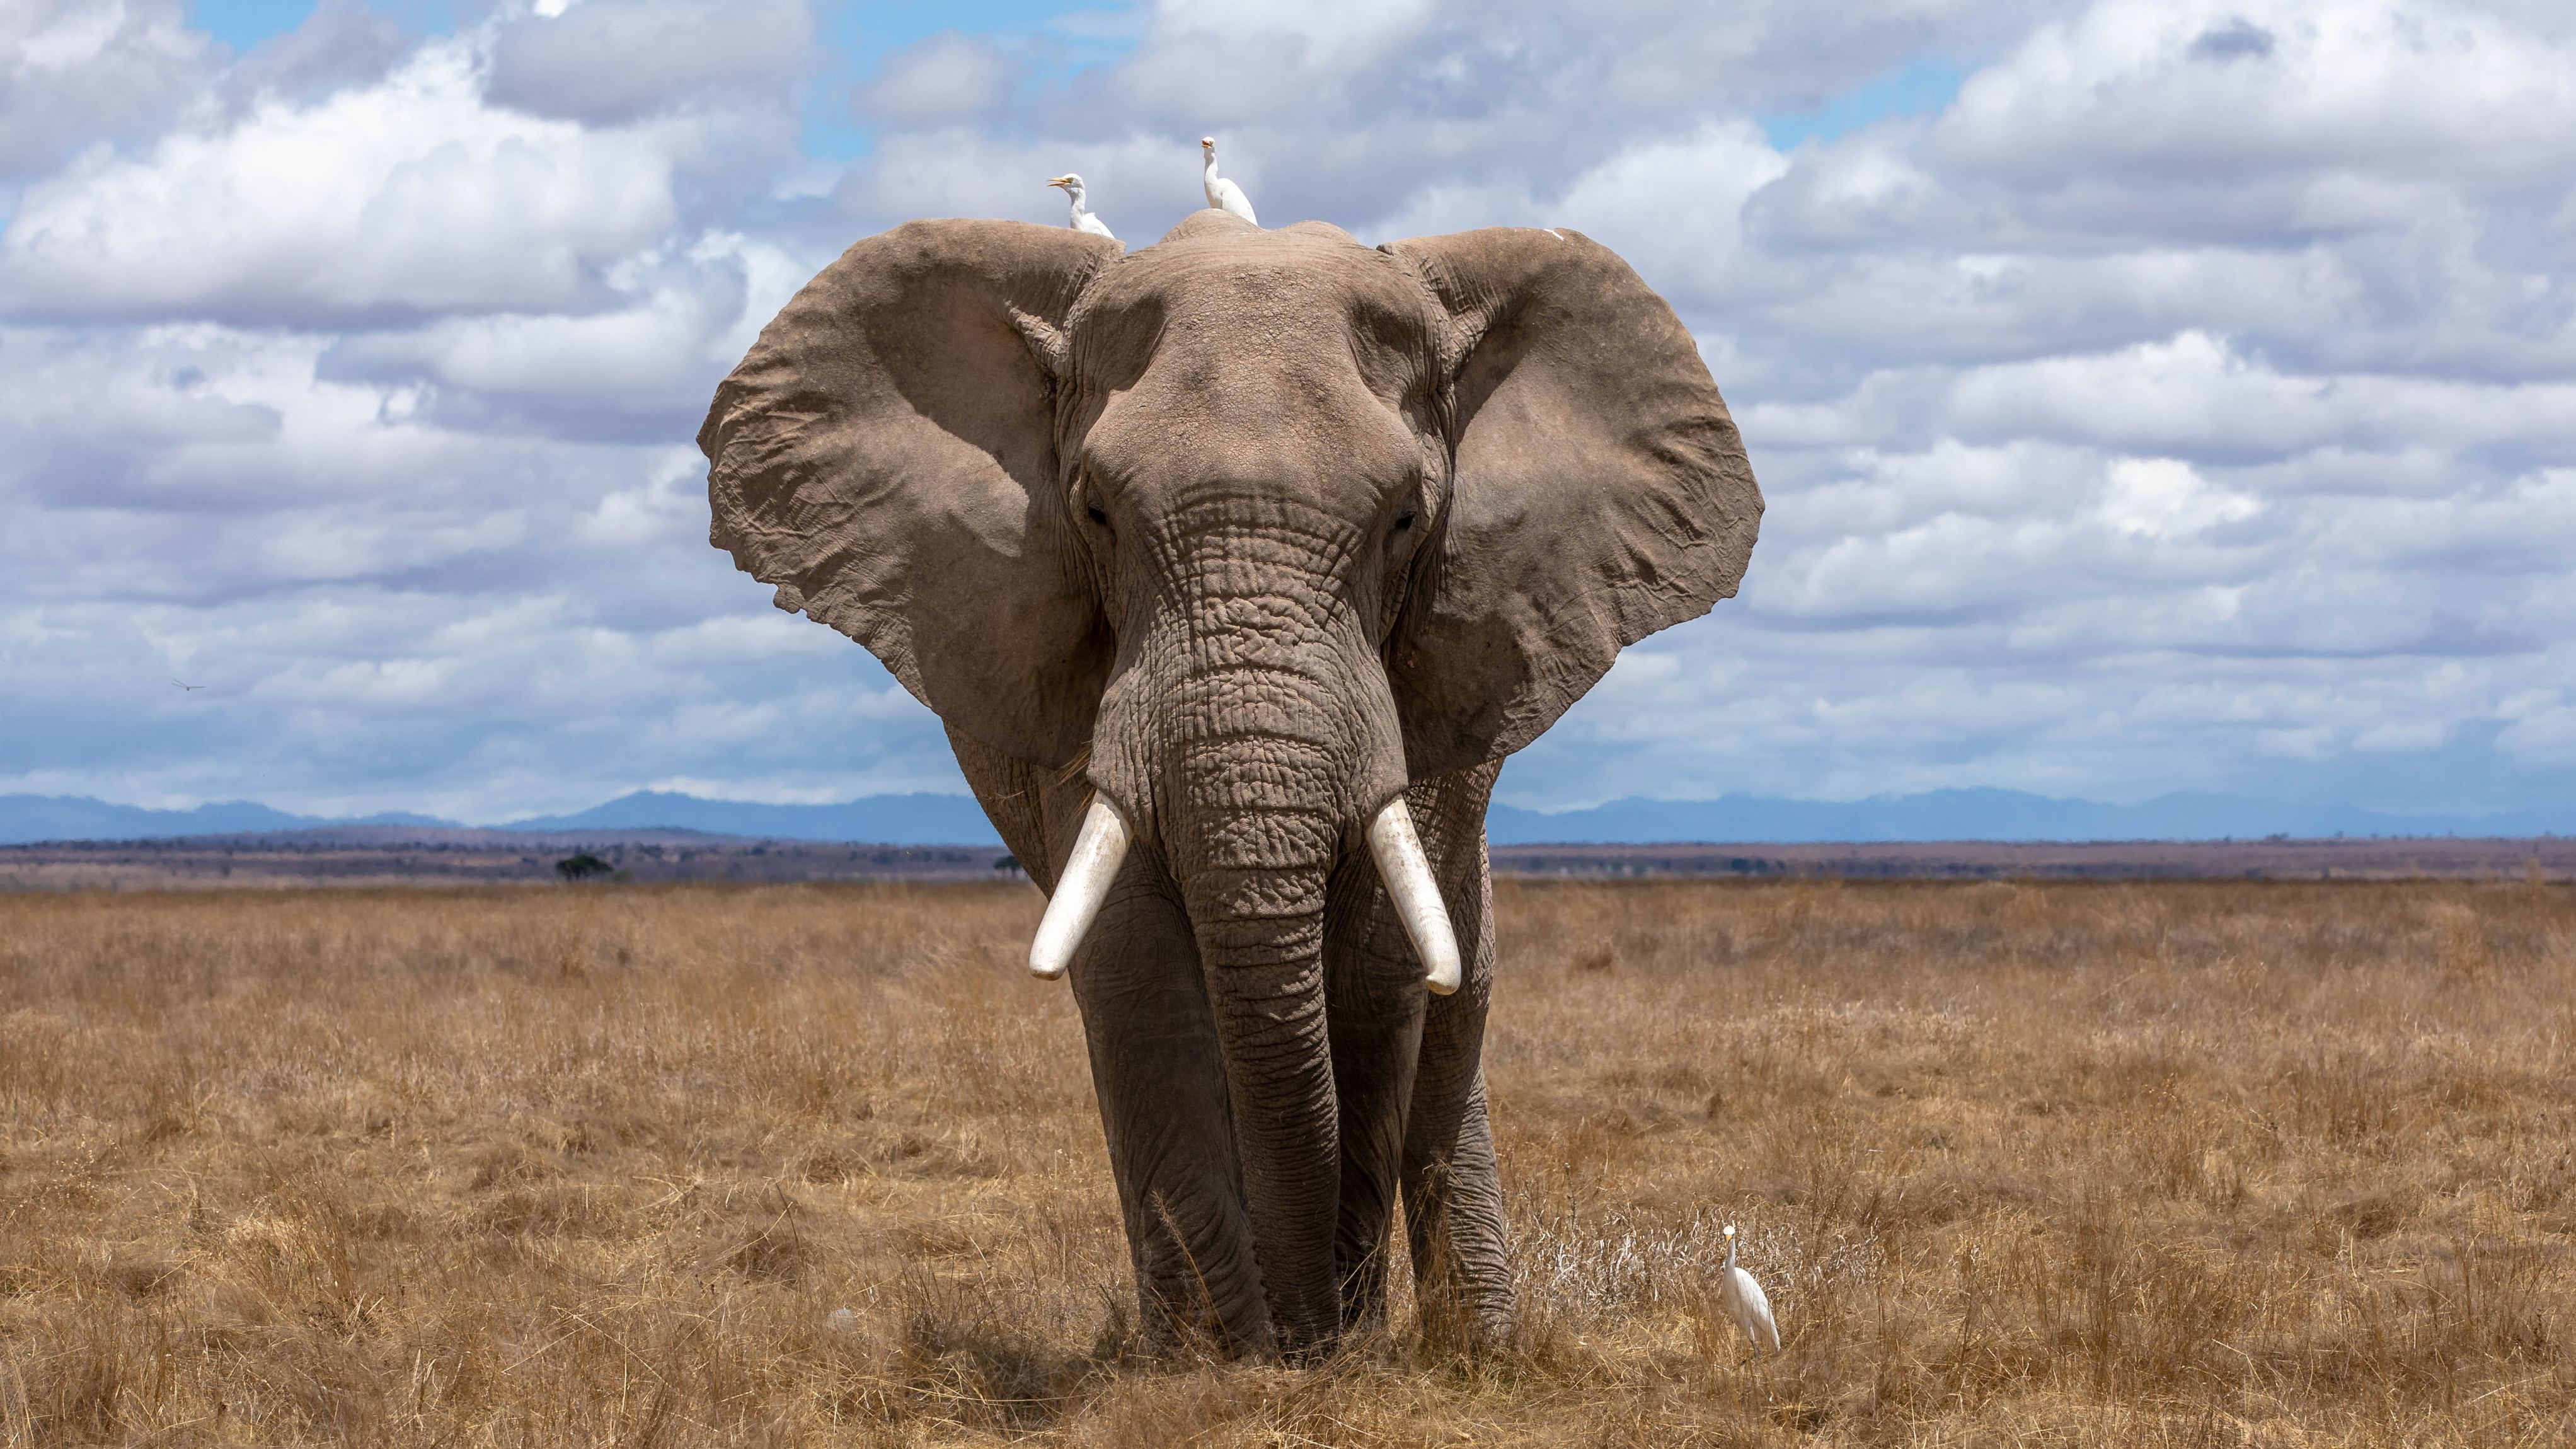 Large African elephant in the savannah